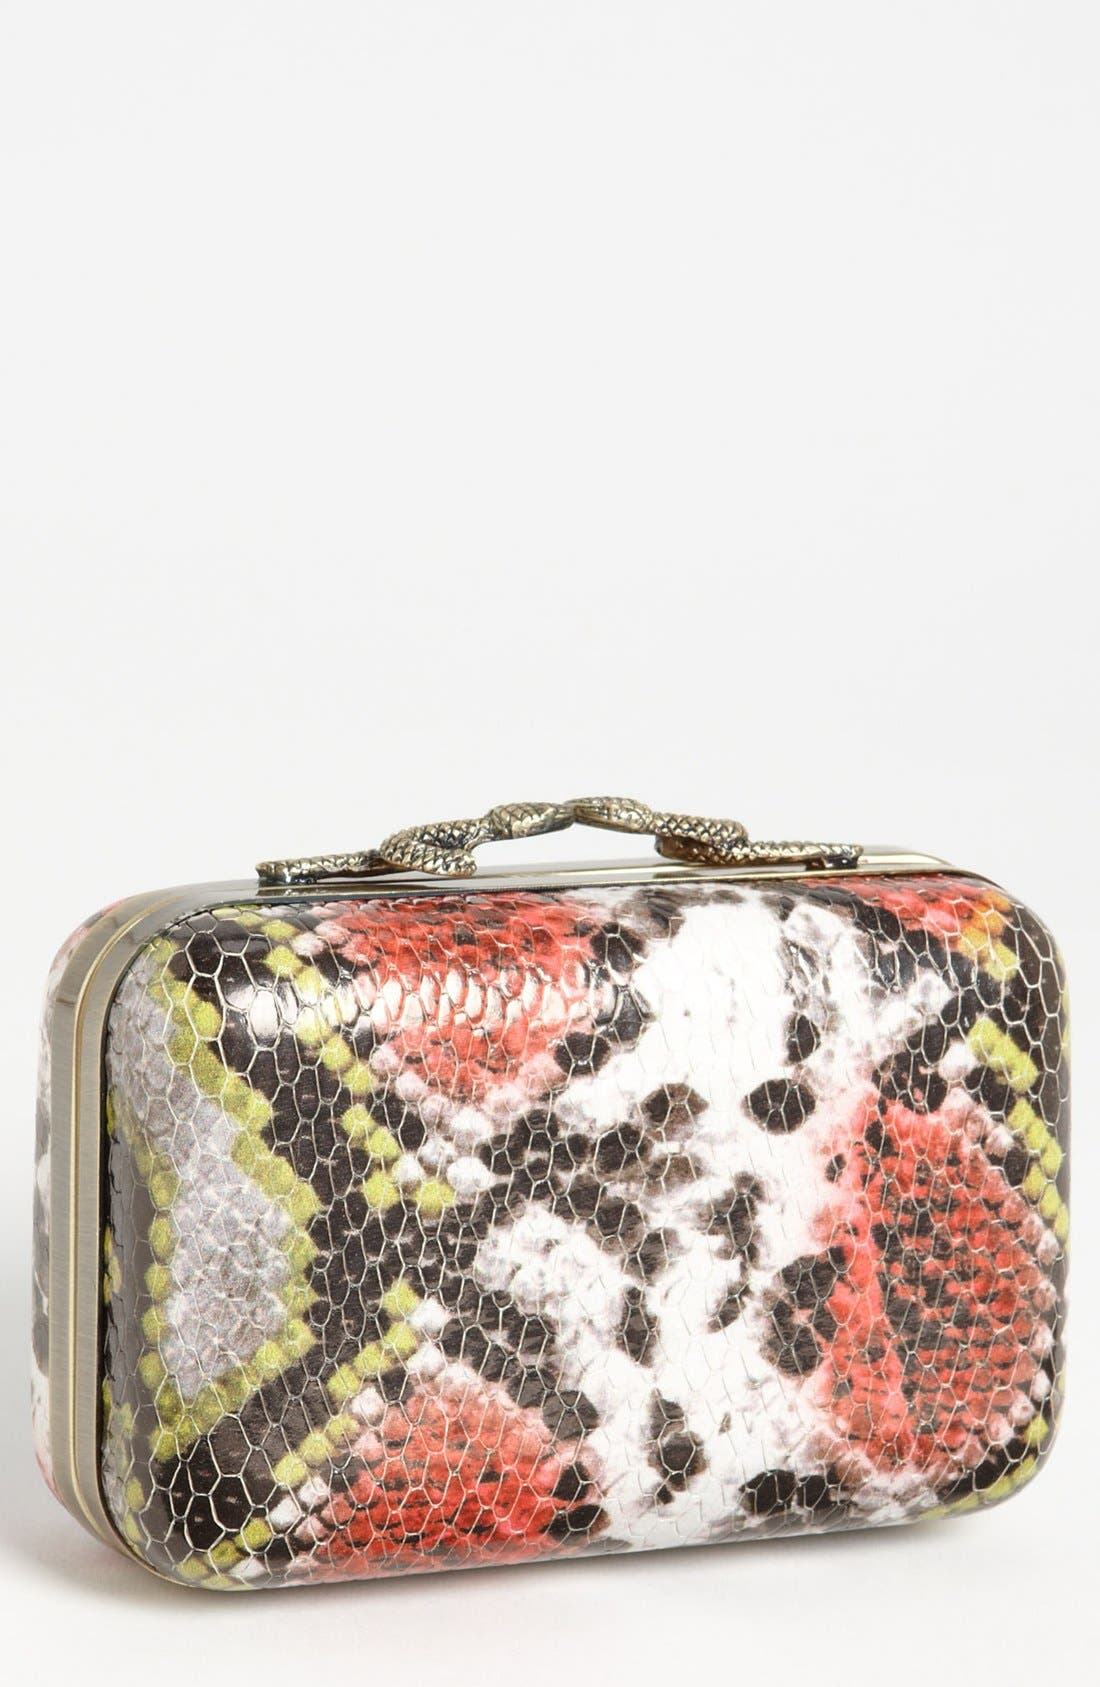 Alternate Image 1 Selected - House of Harlow 1960 'Marley' Snake Print Clutch